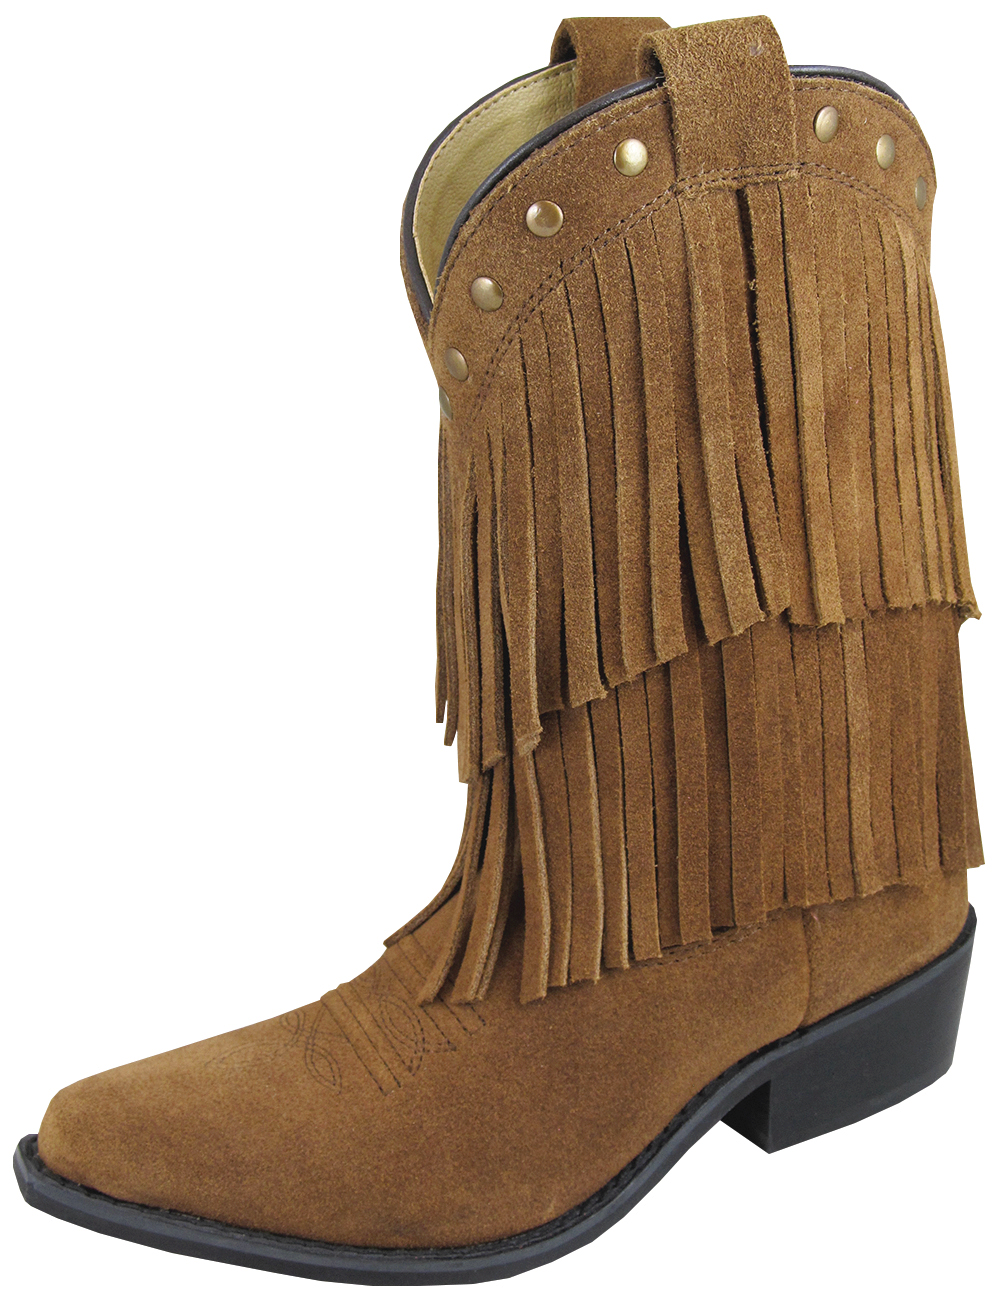 Smoky Mountain Child's Wisteria Double Fringe Leather Boots - Brown 13.5 R Brown